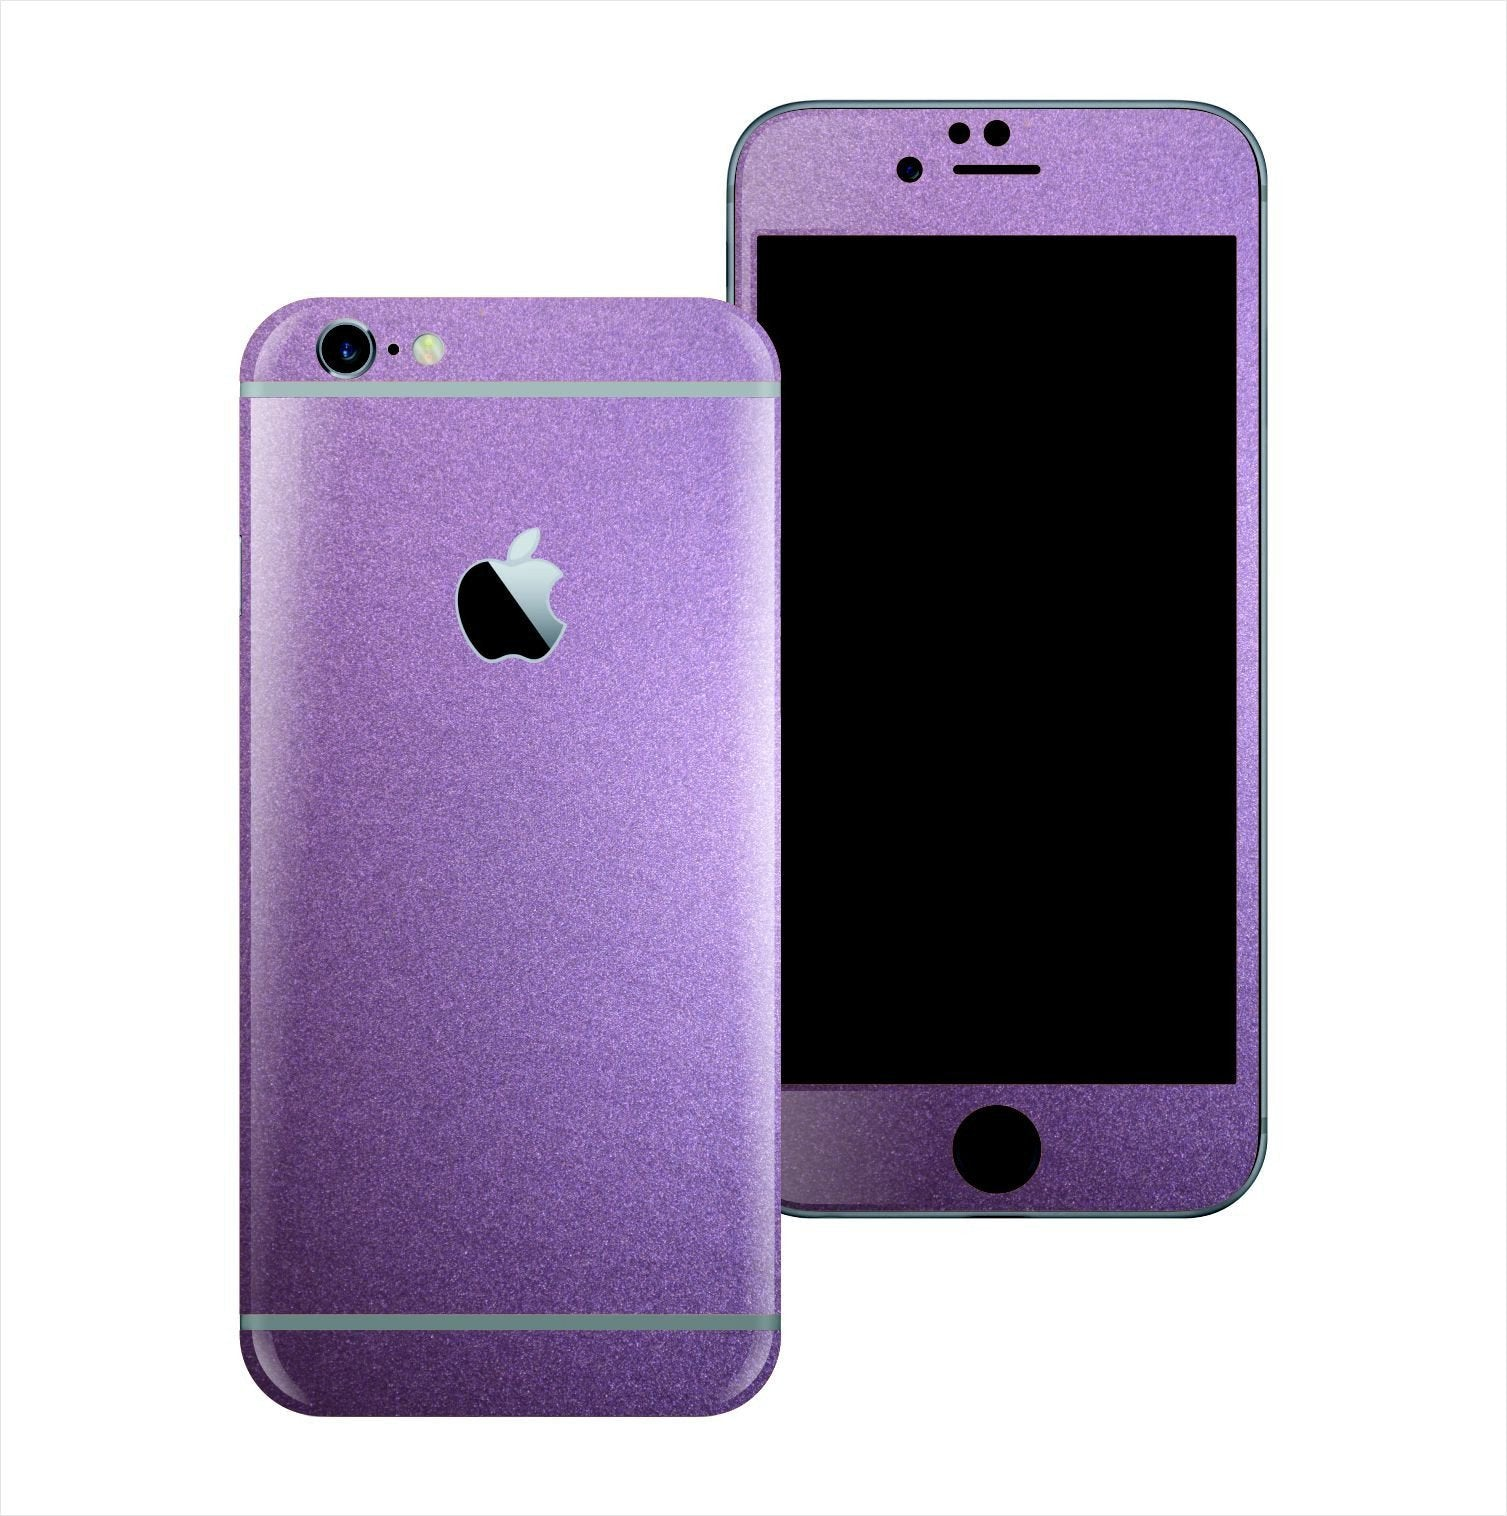 iPhone 6 Violet Matt Matte Metallic Skin Wrap Sticker Cover Protector Decal by EasySkinz